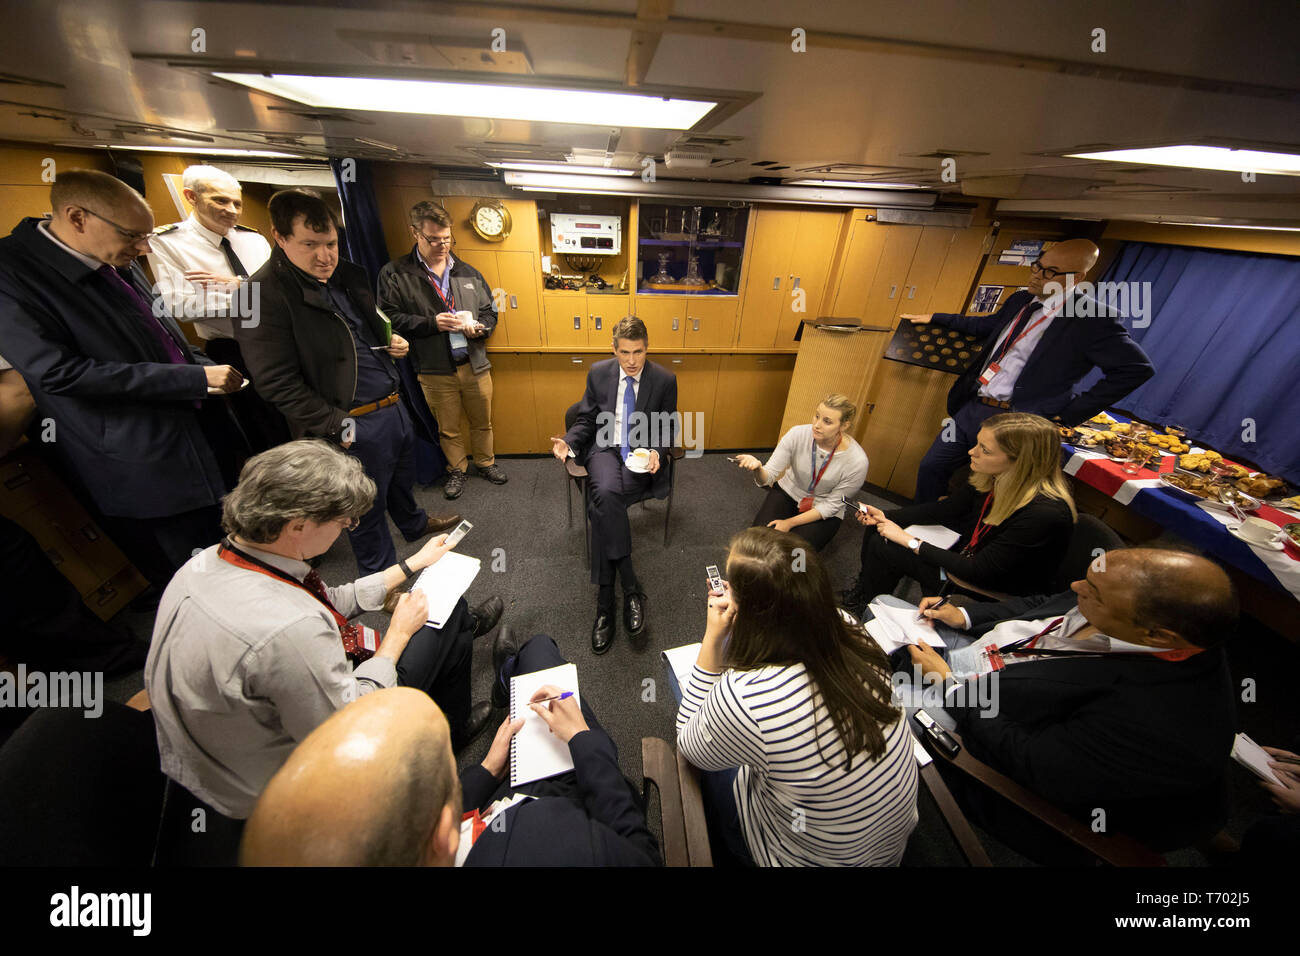 Former Defence Secretary Gavin Williamson (centre) speaking to the media during a visit to HMS Vigilant at HM Naval Base Clyde, Faslane, the Vanguard-class submarine carries the UK's Trident nuclear deterrent. - Stock Image